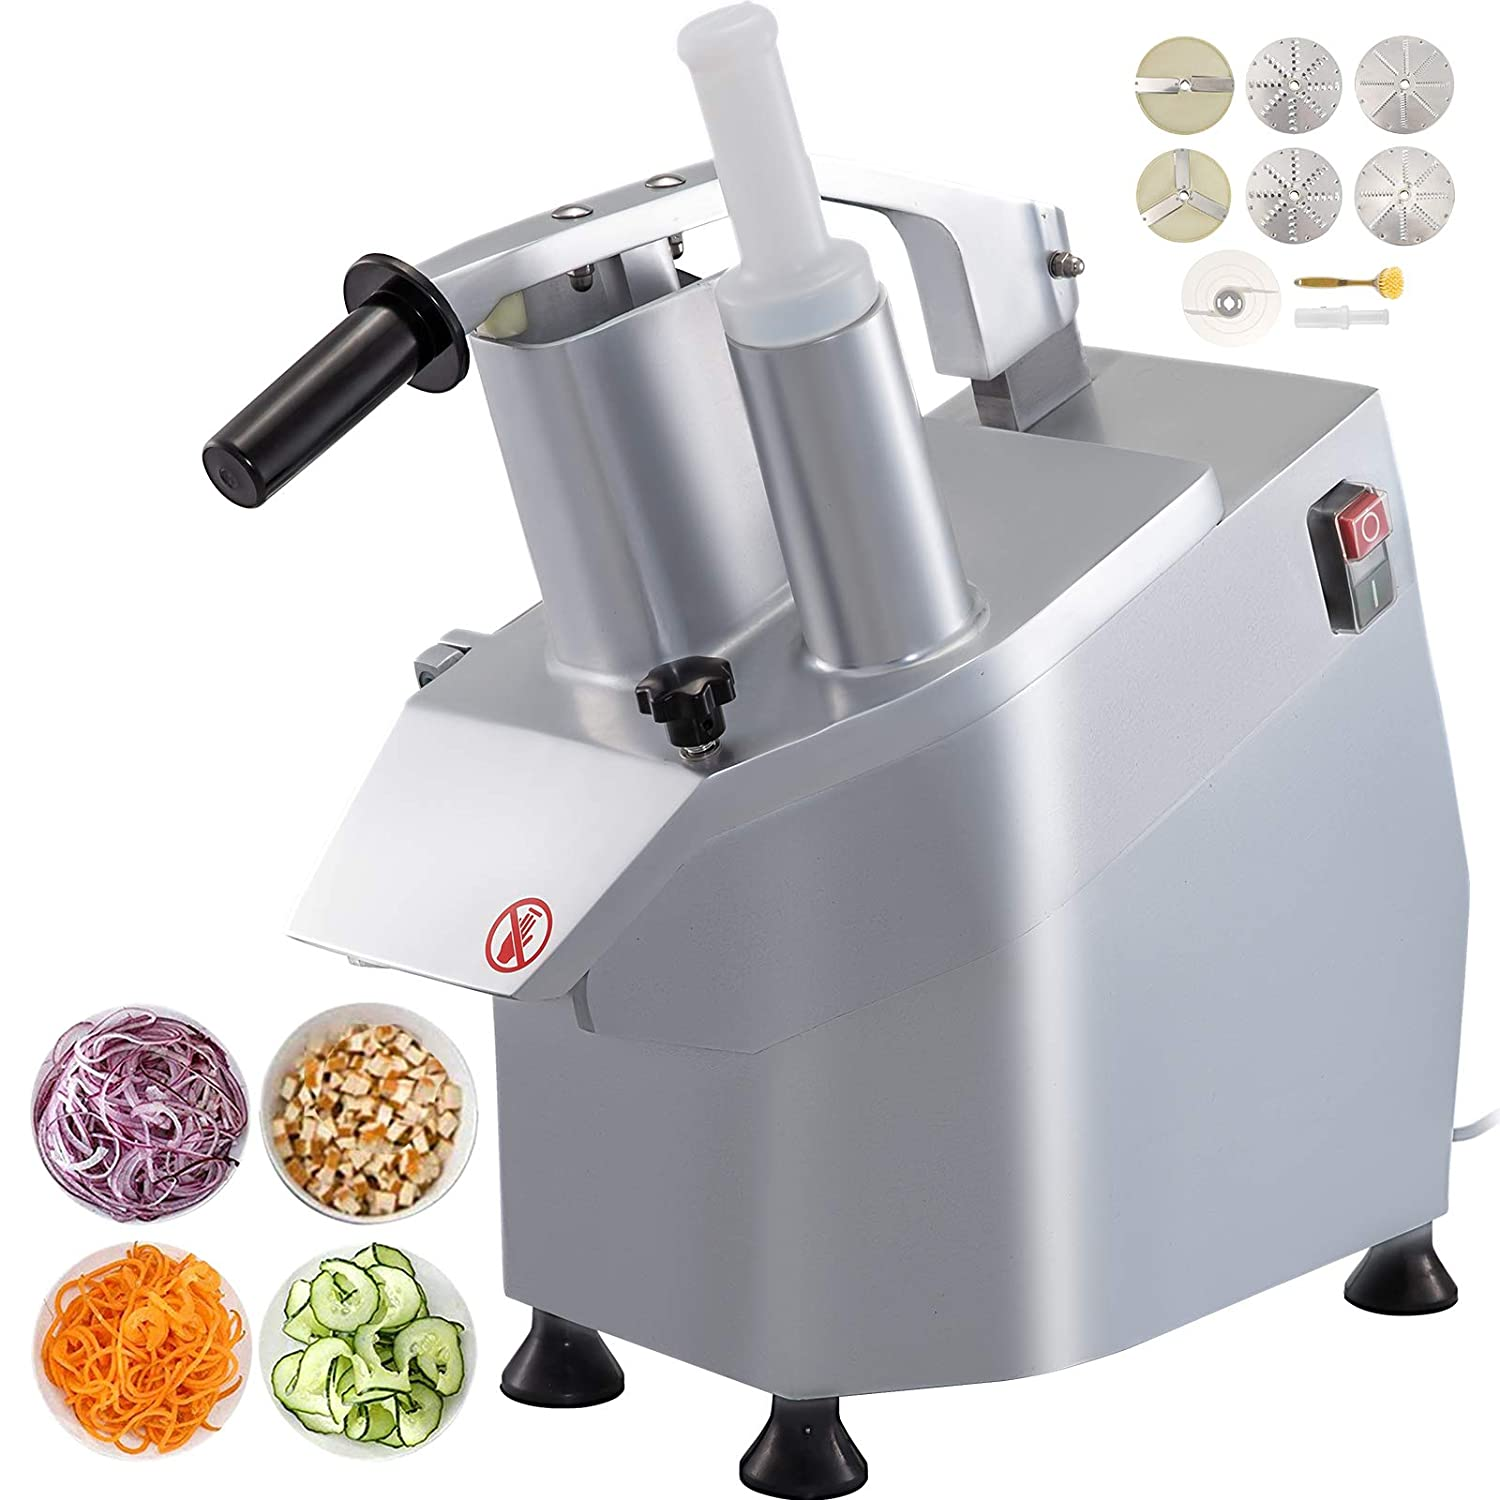 VBENLEM 110V Multi-functional Commercial Food Processor Stainless Steel Plus Cast Aluminum Alloy Fruit and Vegetable Cutter Slicer Machine 550W 1600 RPM with Detachable 6-blades Perfect for Cucumber Onion Carrot Slicing Shredding Dicing